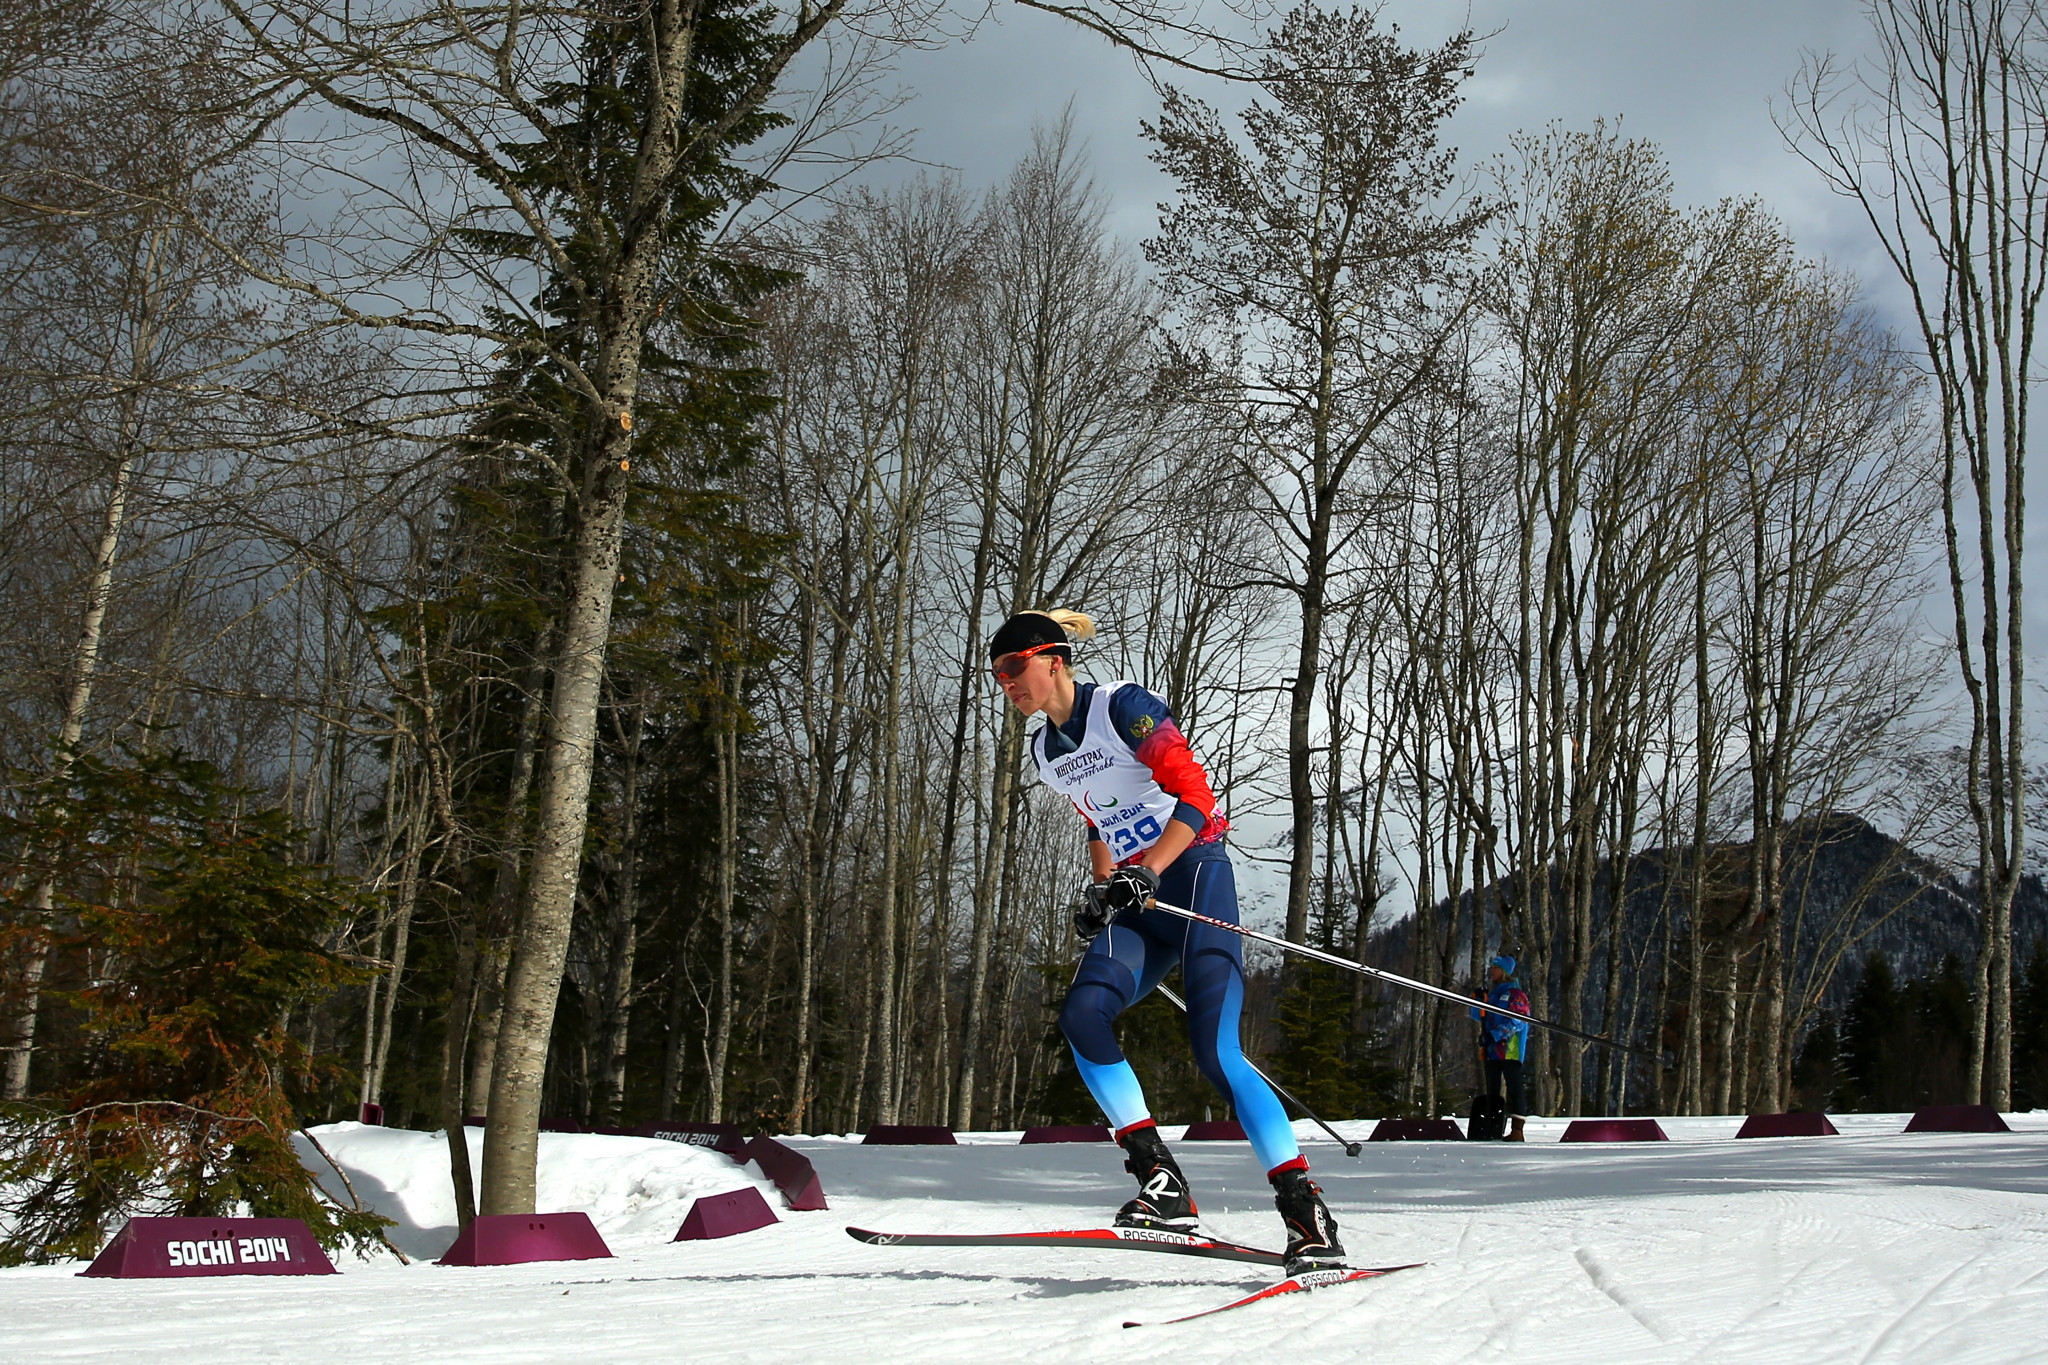 Russians competing as neutrals dominate biathlon races at Para Nordic Skiing World Cup